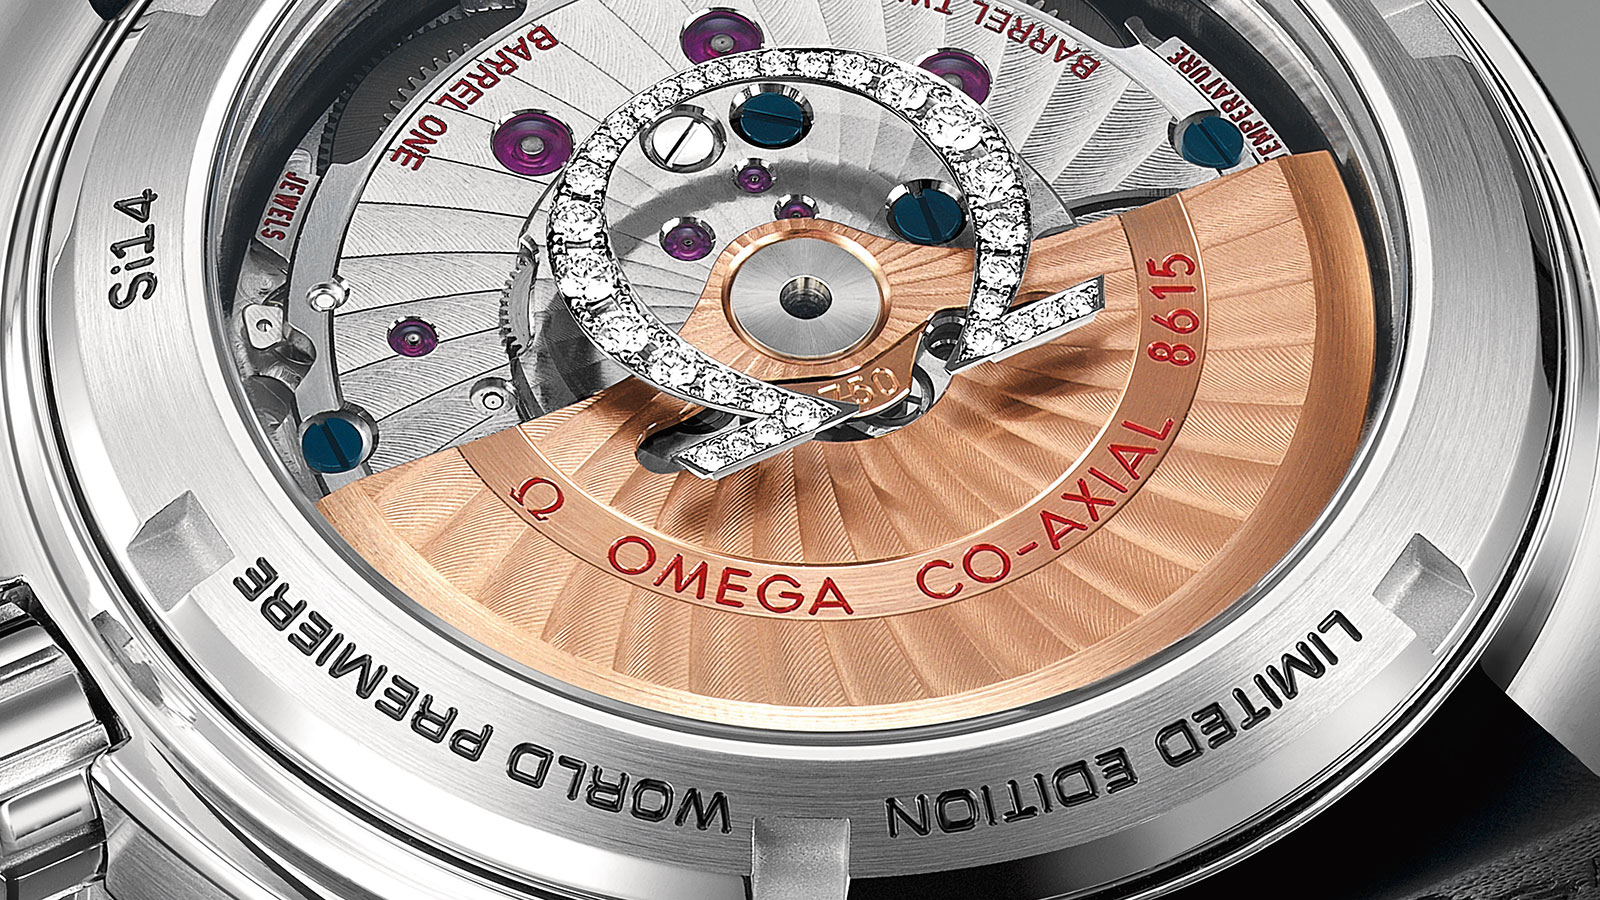 Seamaster Planet Ocean 600M Planet Ocean 600M Omega Co‑AxialGMT 43,5mm Relógio - 232.98.44.22.01.001